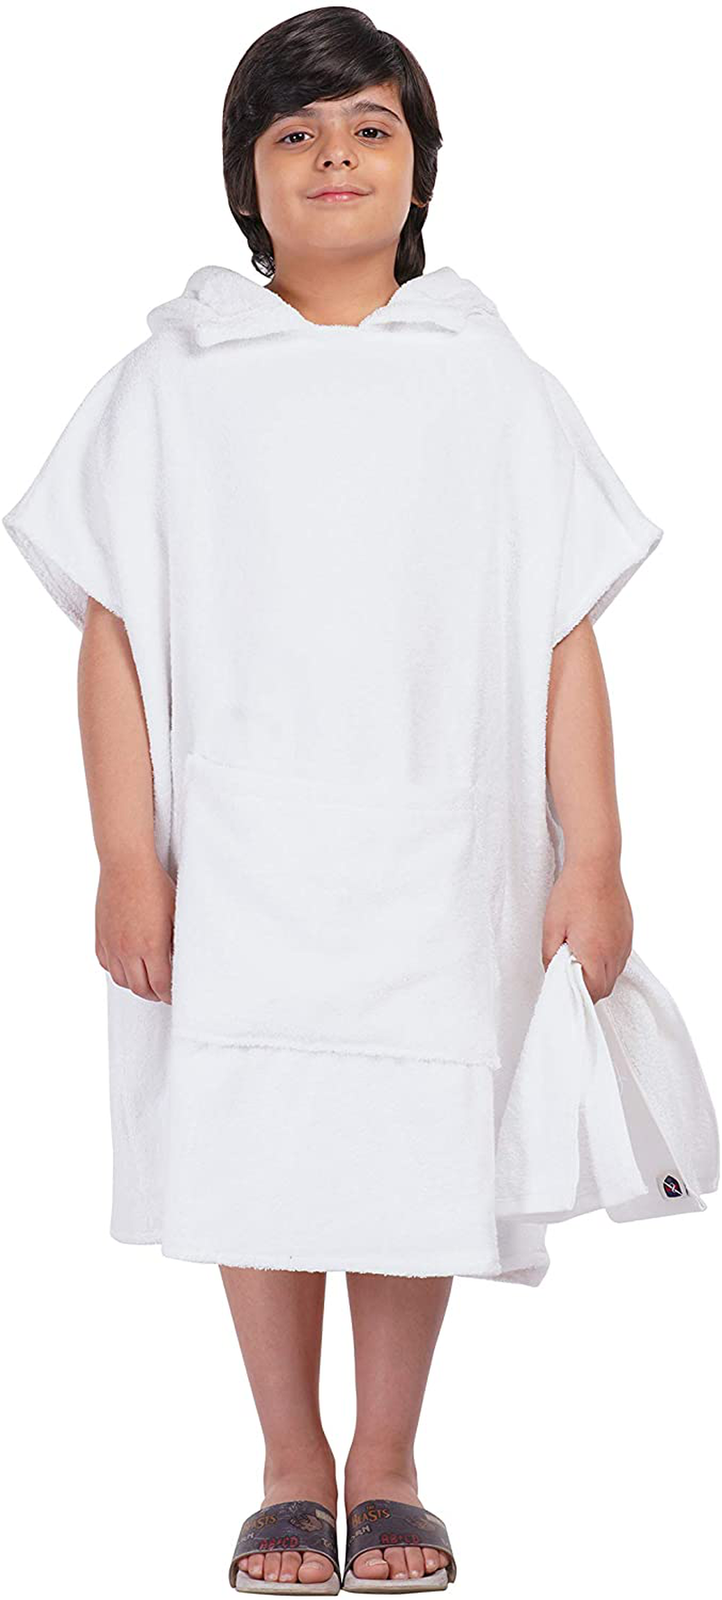 ALLEN & MATE Hooded Towel Poncho for Kids, Premium Cotton Changing Robe for Beac